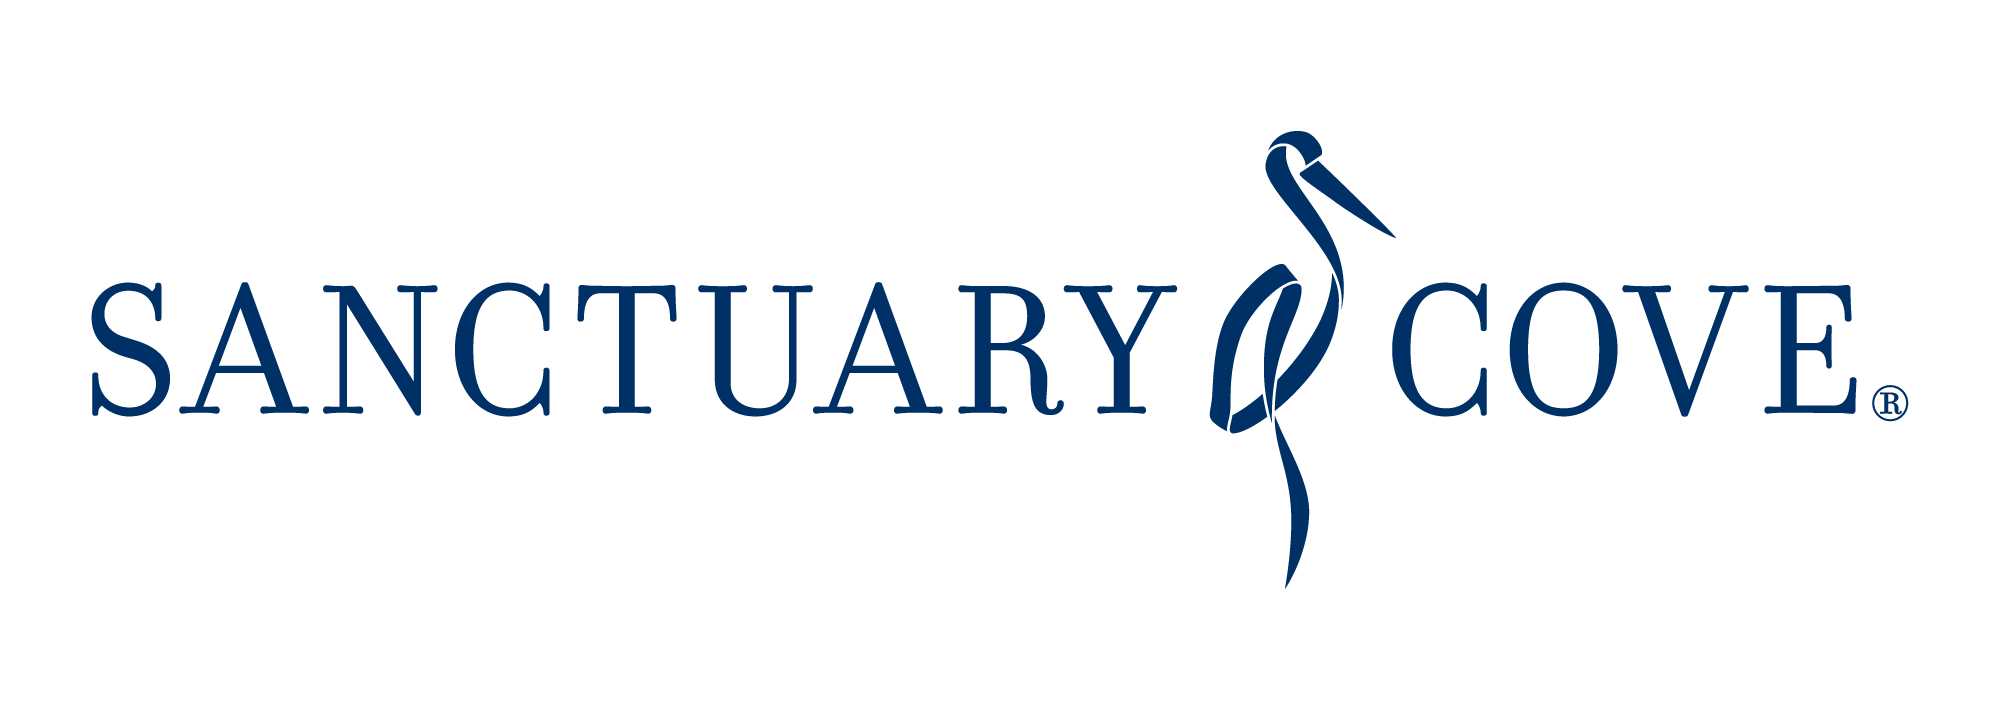 GCCM is a platinum sponsor of Sanctuary Cove offering their boat owners superior boatyard services